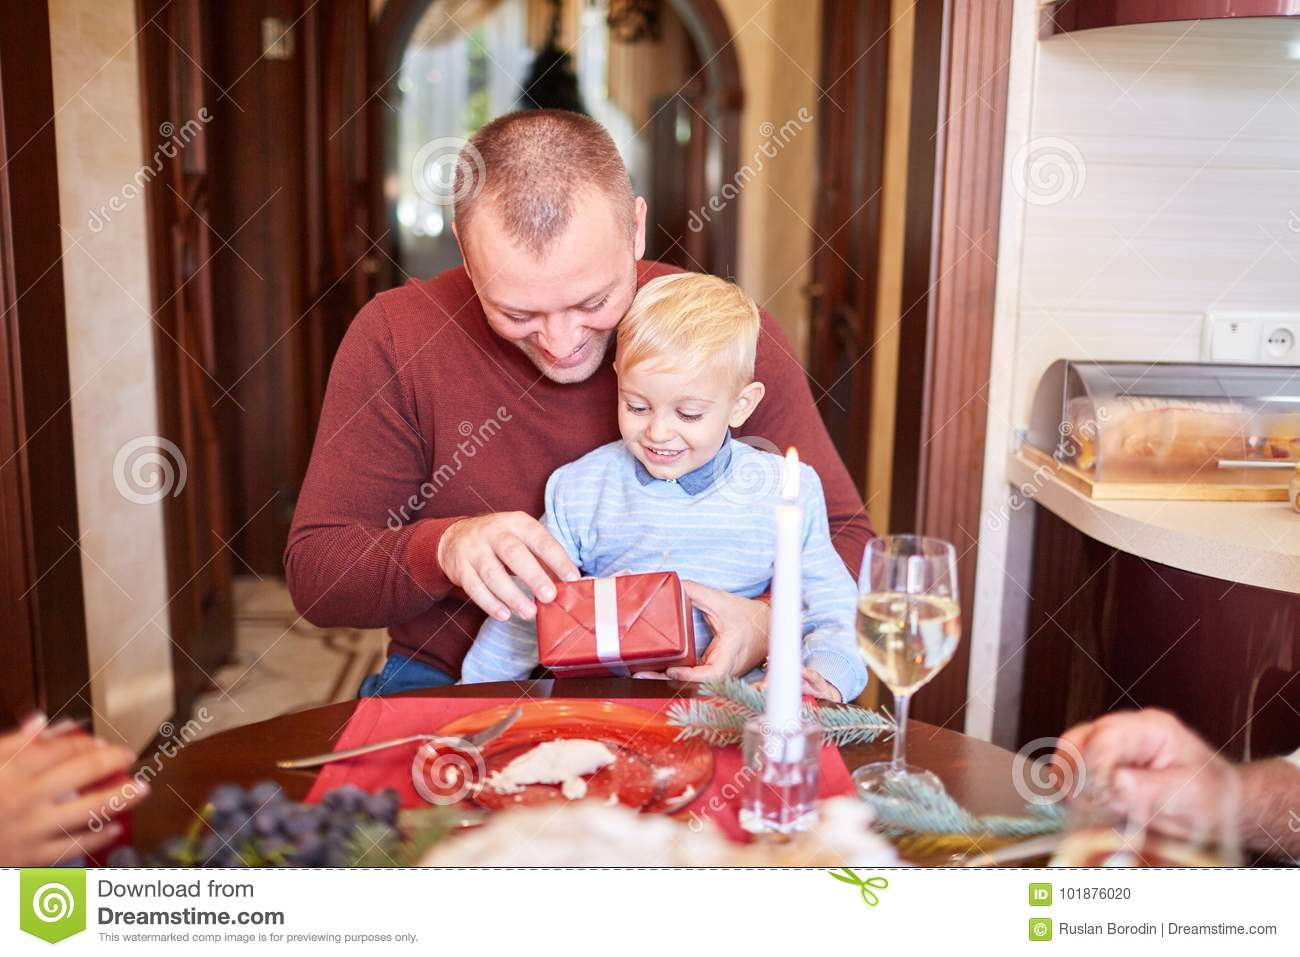 Dad giving a red gift to little son on a festive background. Family Christmas presents concept.